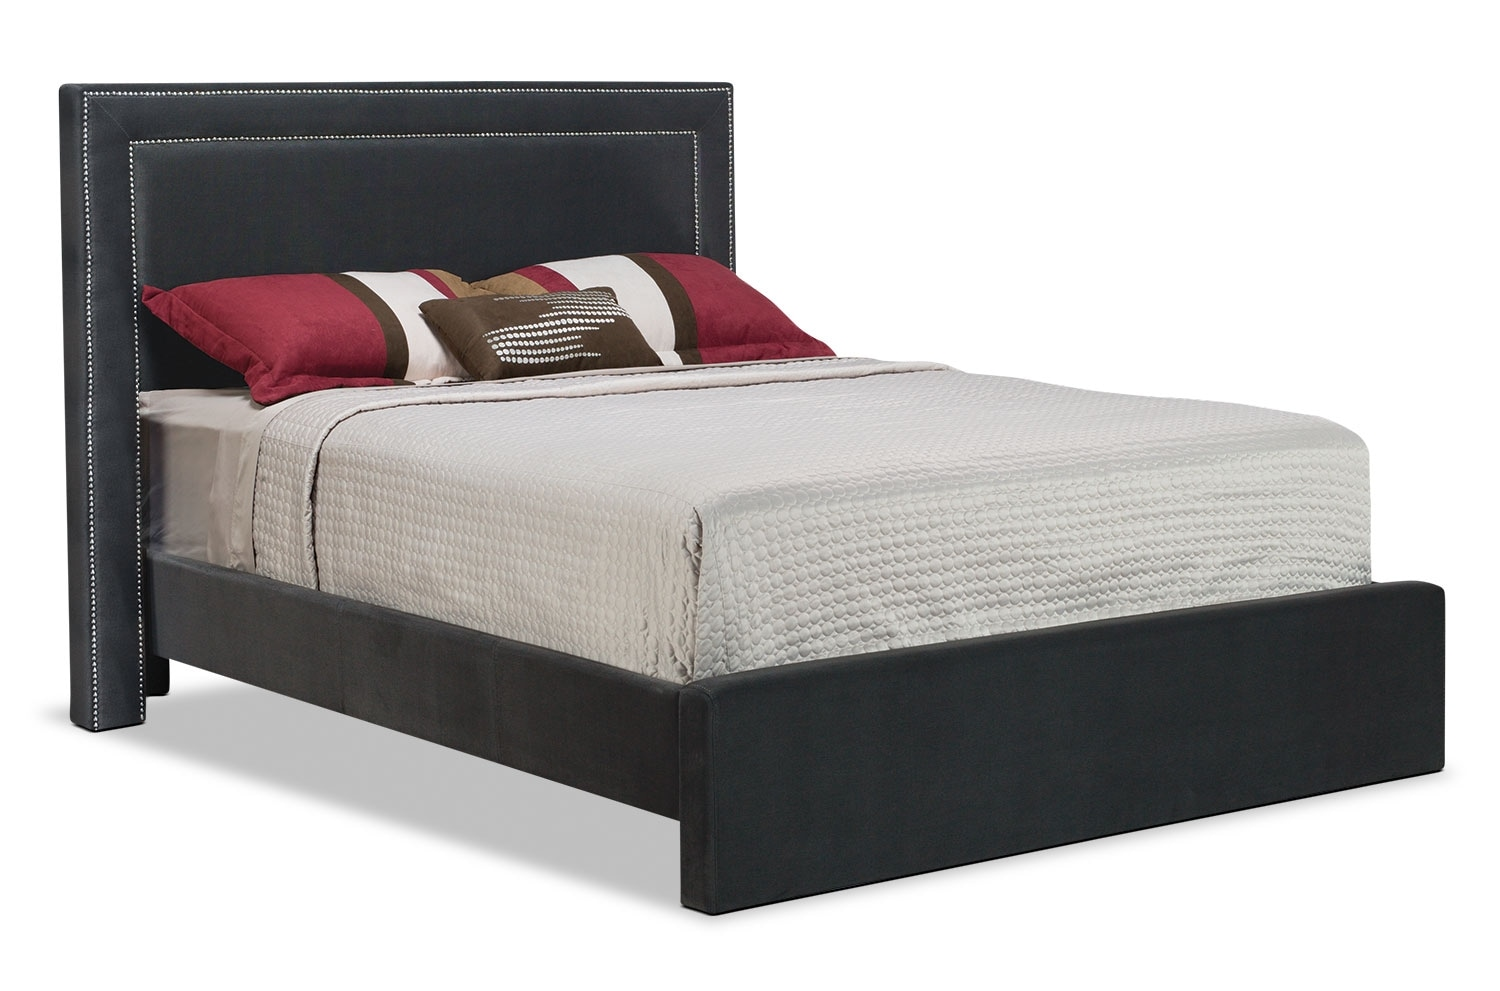 Bedroom Furniture - Amber Queen Bed - Charcoal